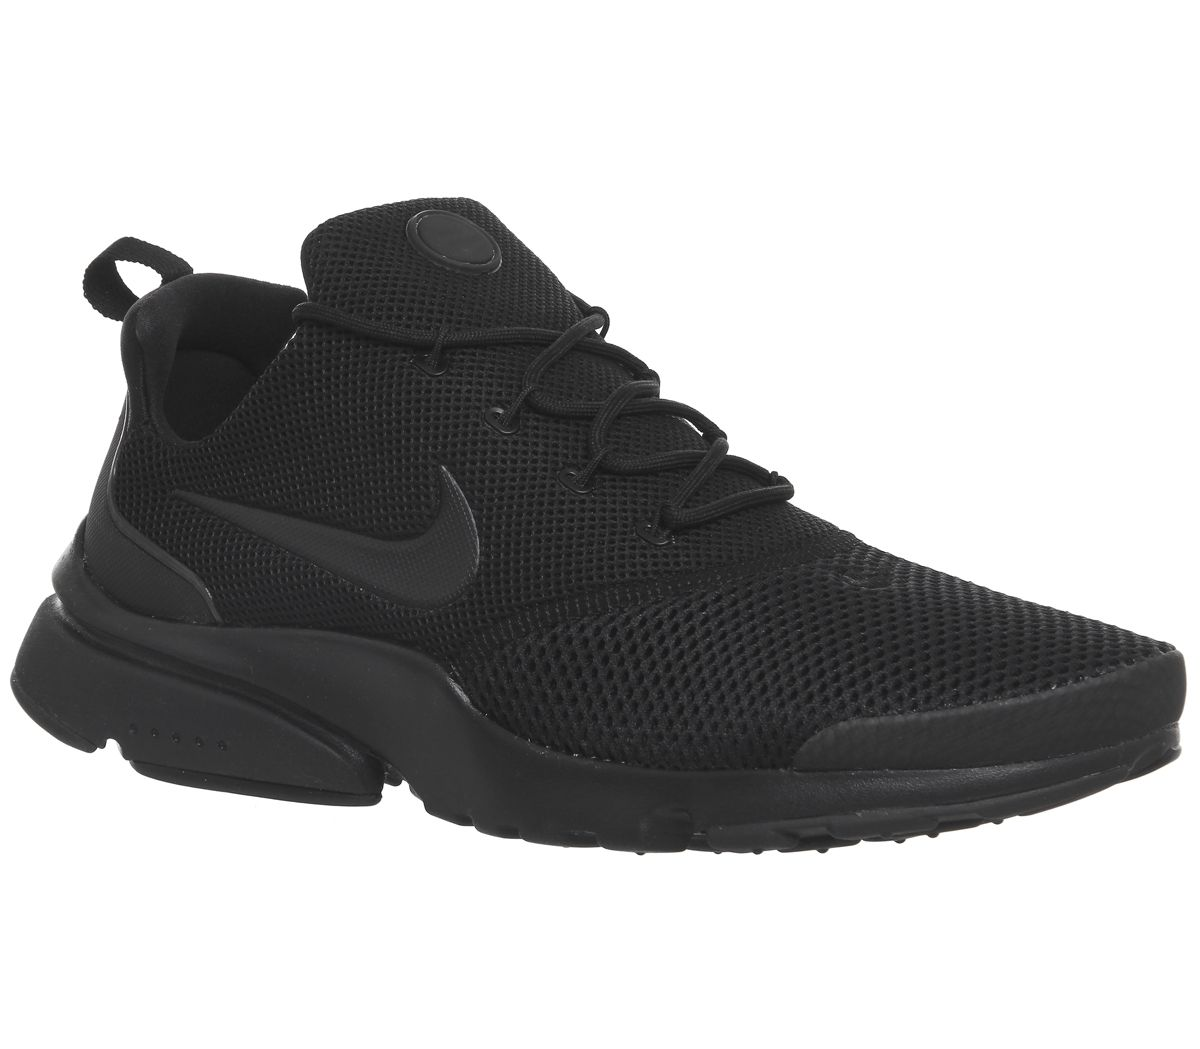 a18571117f742 Nike Presto Fly Trainers Triple Black - His trainers